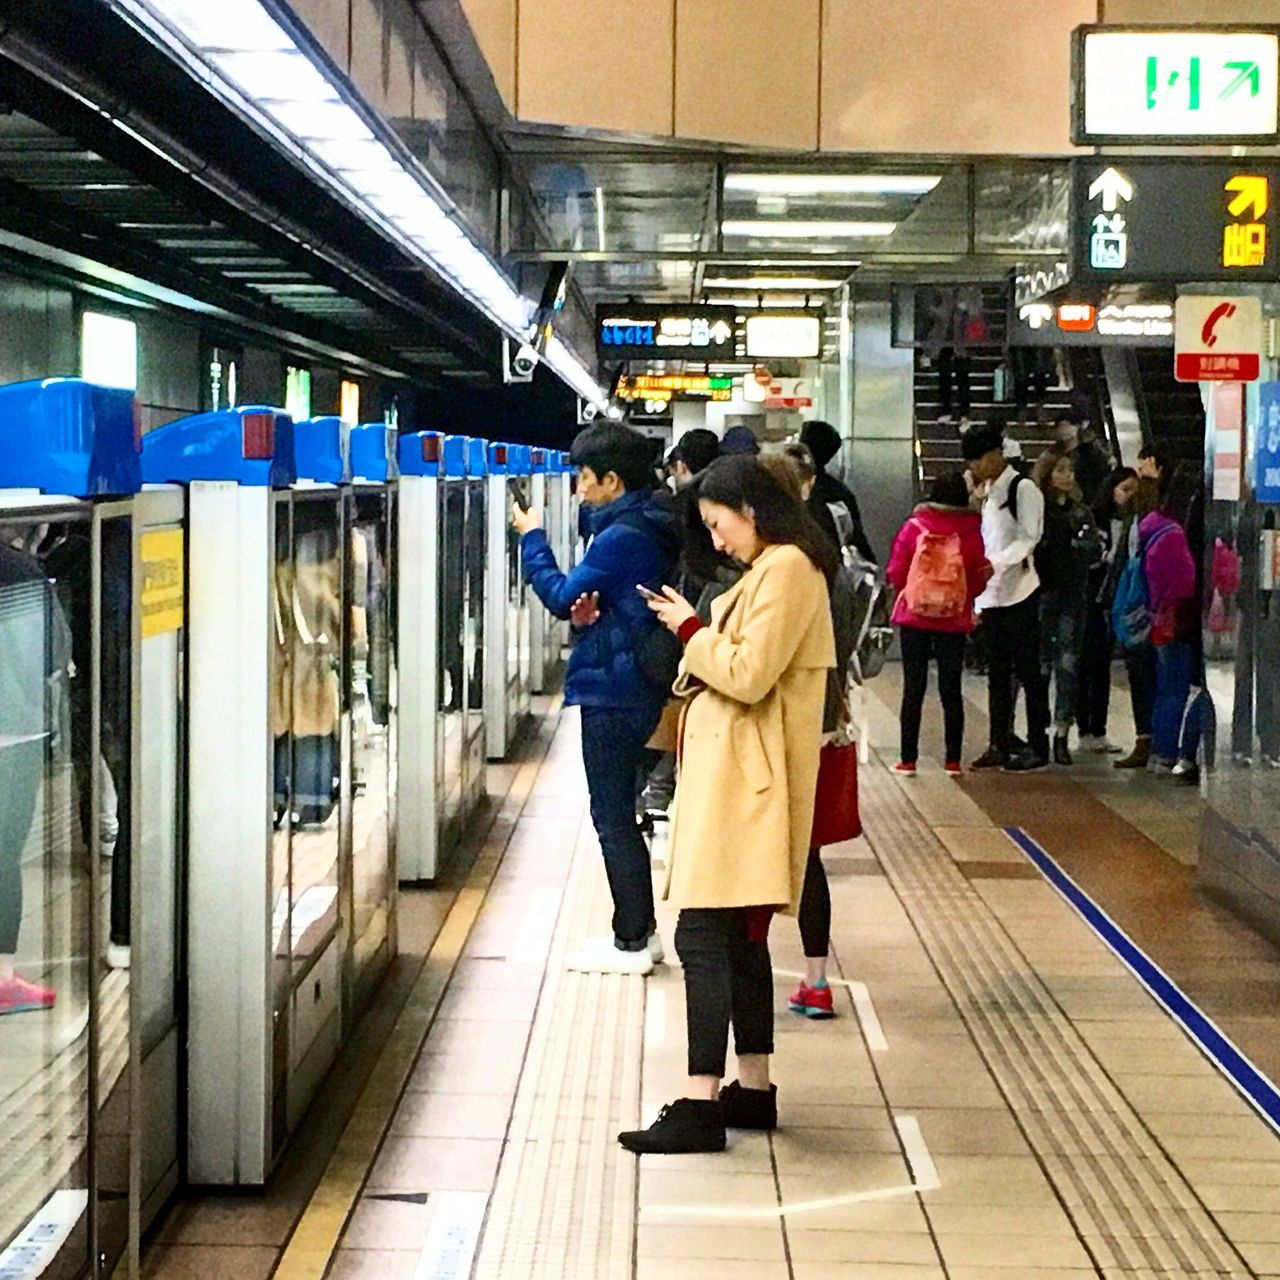 Mrt Riders Tuning Out Queue Lining Up Smartphone Reading EyeEmNewHere